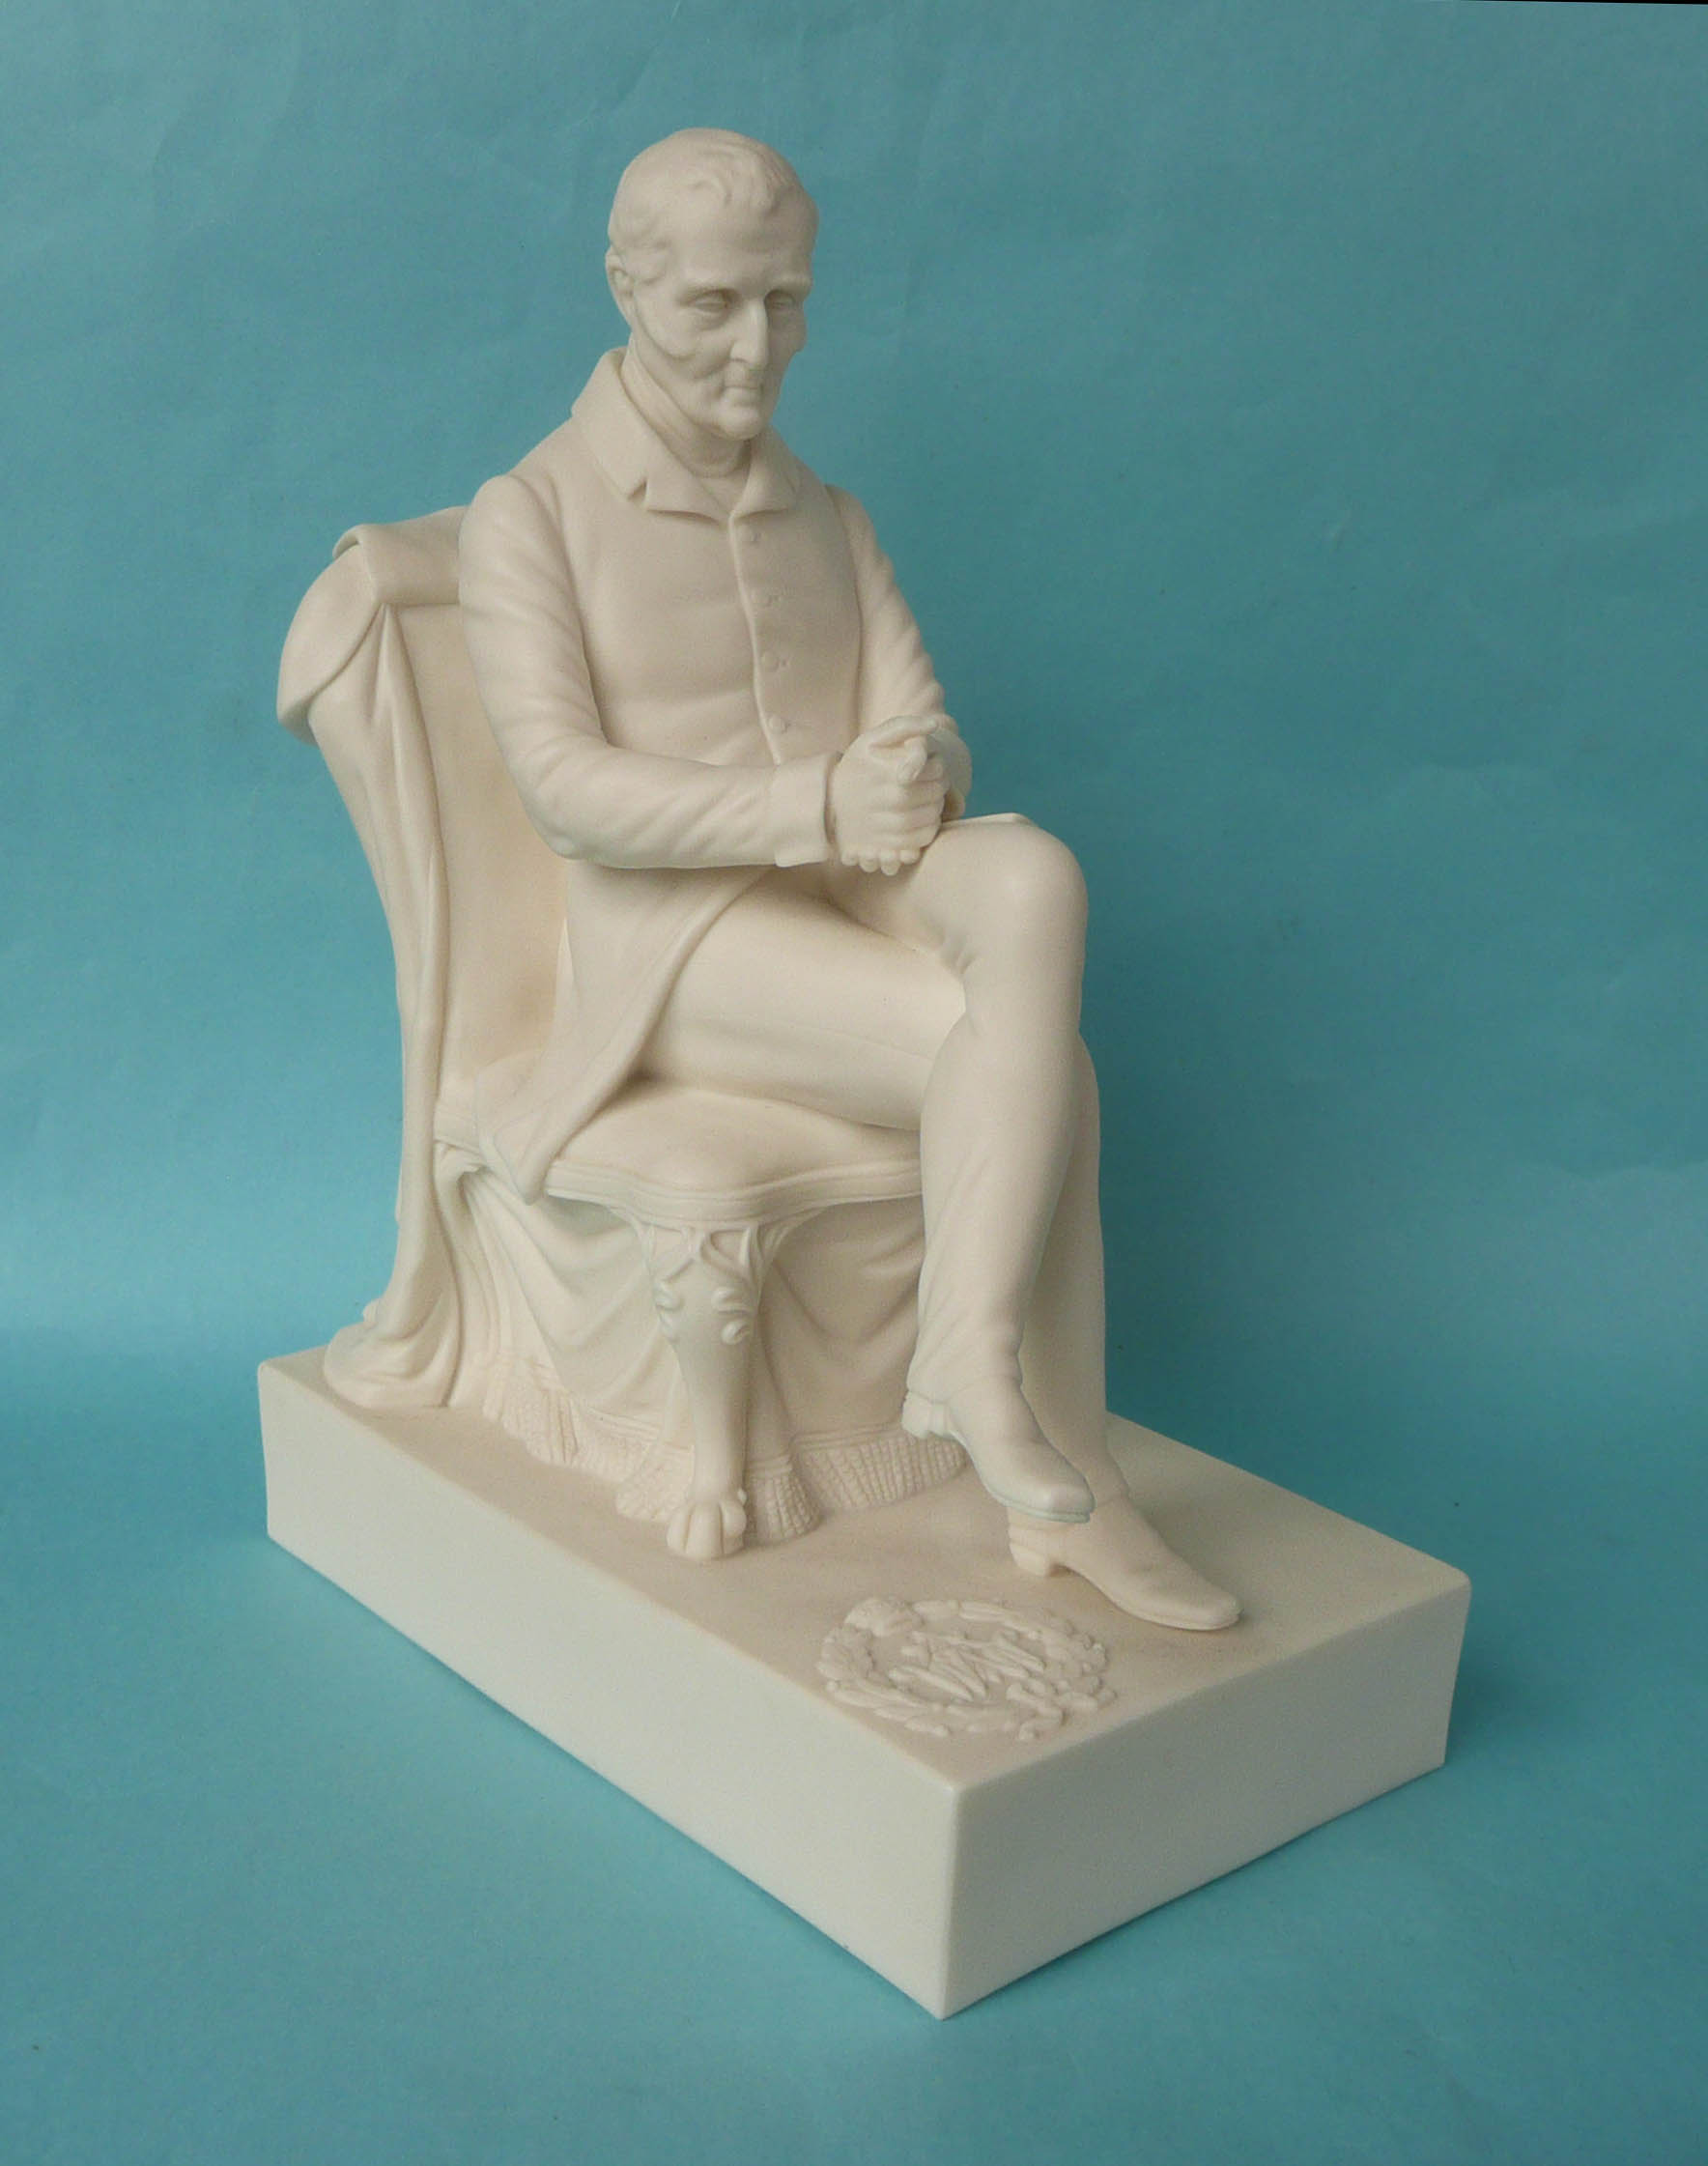 Lot 27 - 1852 Wellington: a good white parian group by Crowquill after G. Abbot depicted seated on a